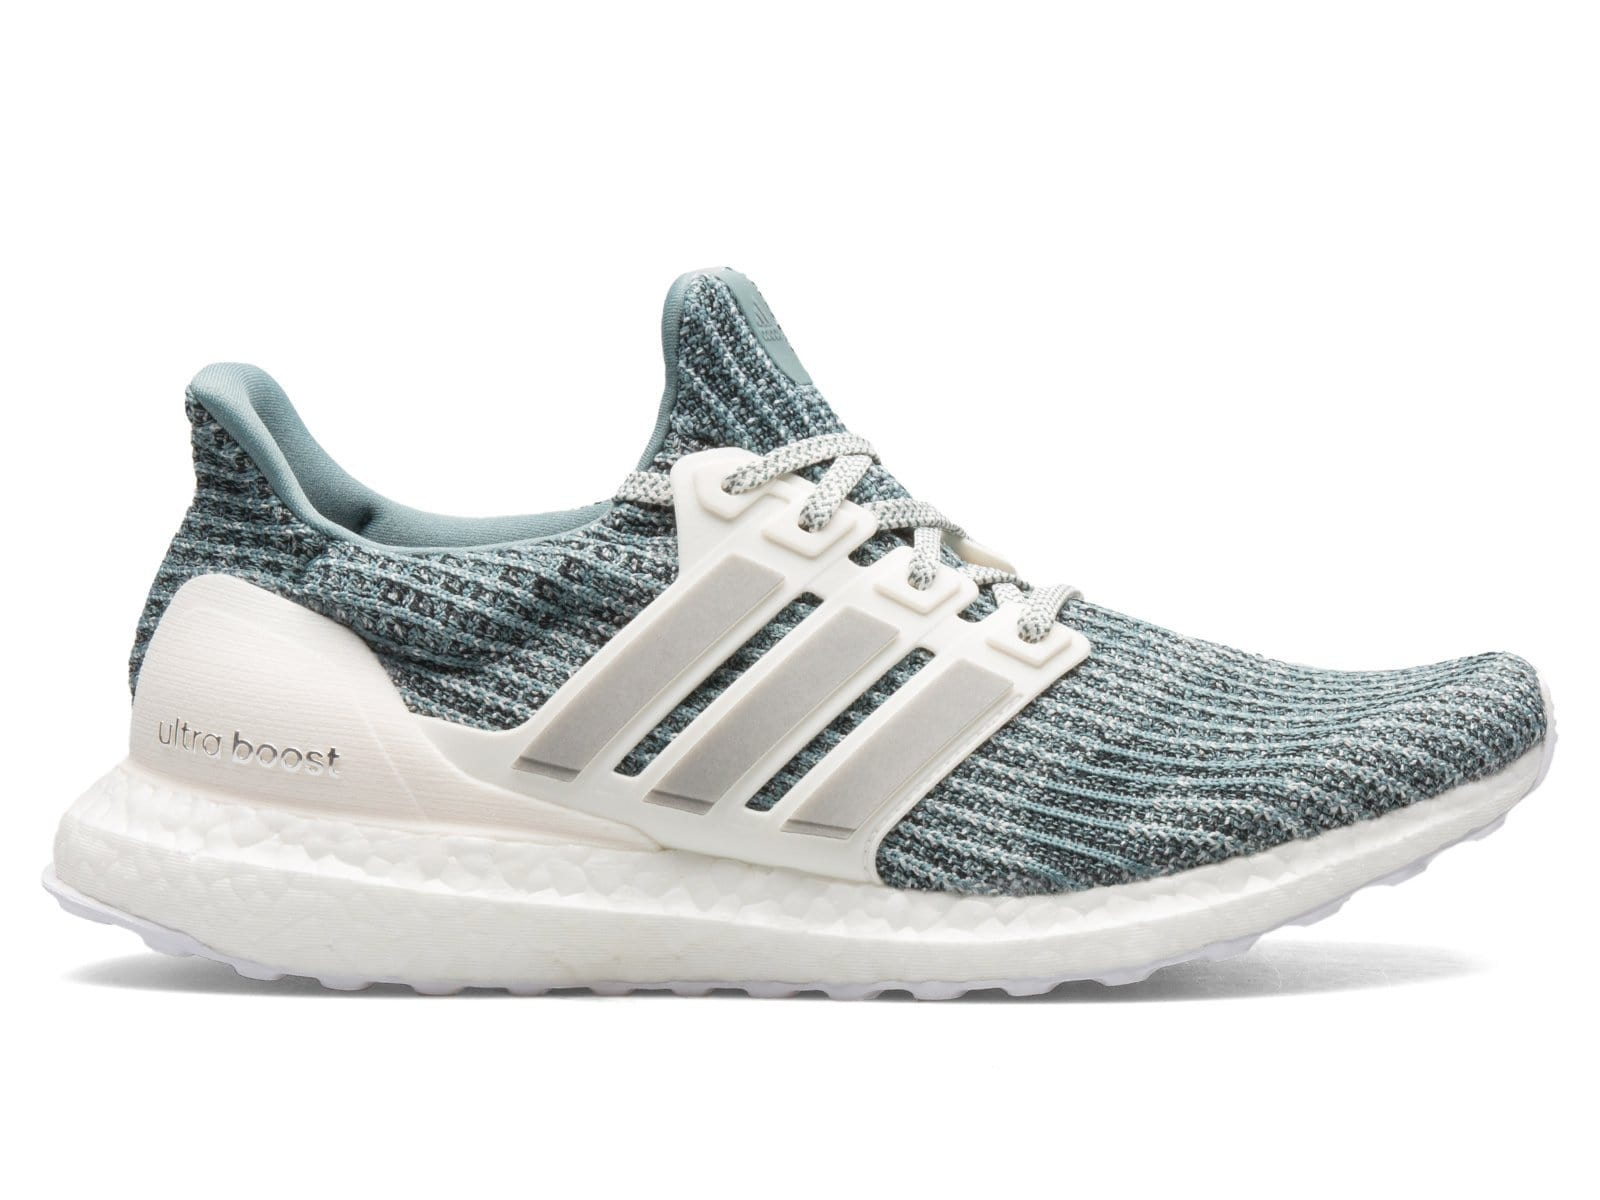 Adidas Parley ULTRABOOST LTD Cloud White/Silver Metallic/Cloud White